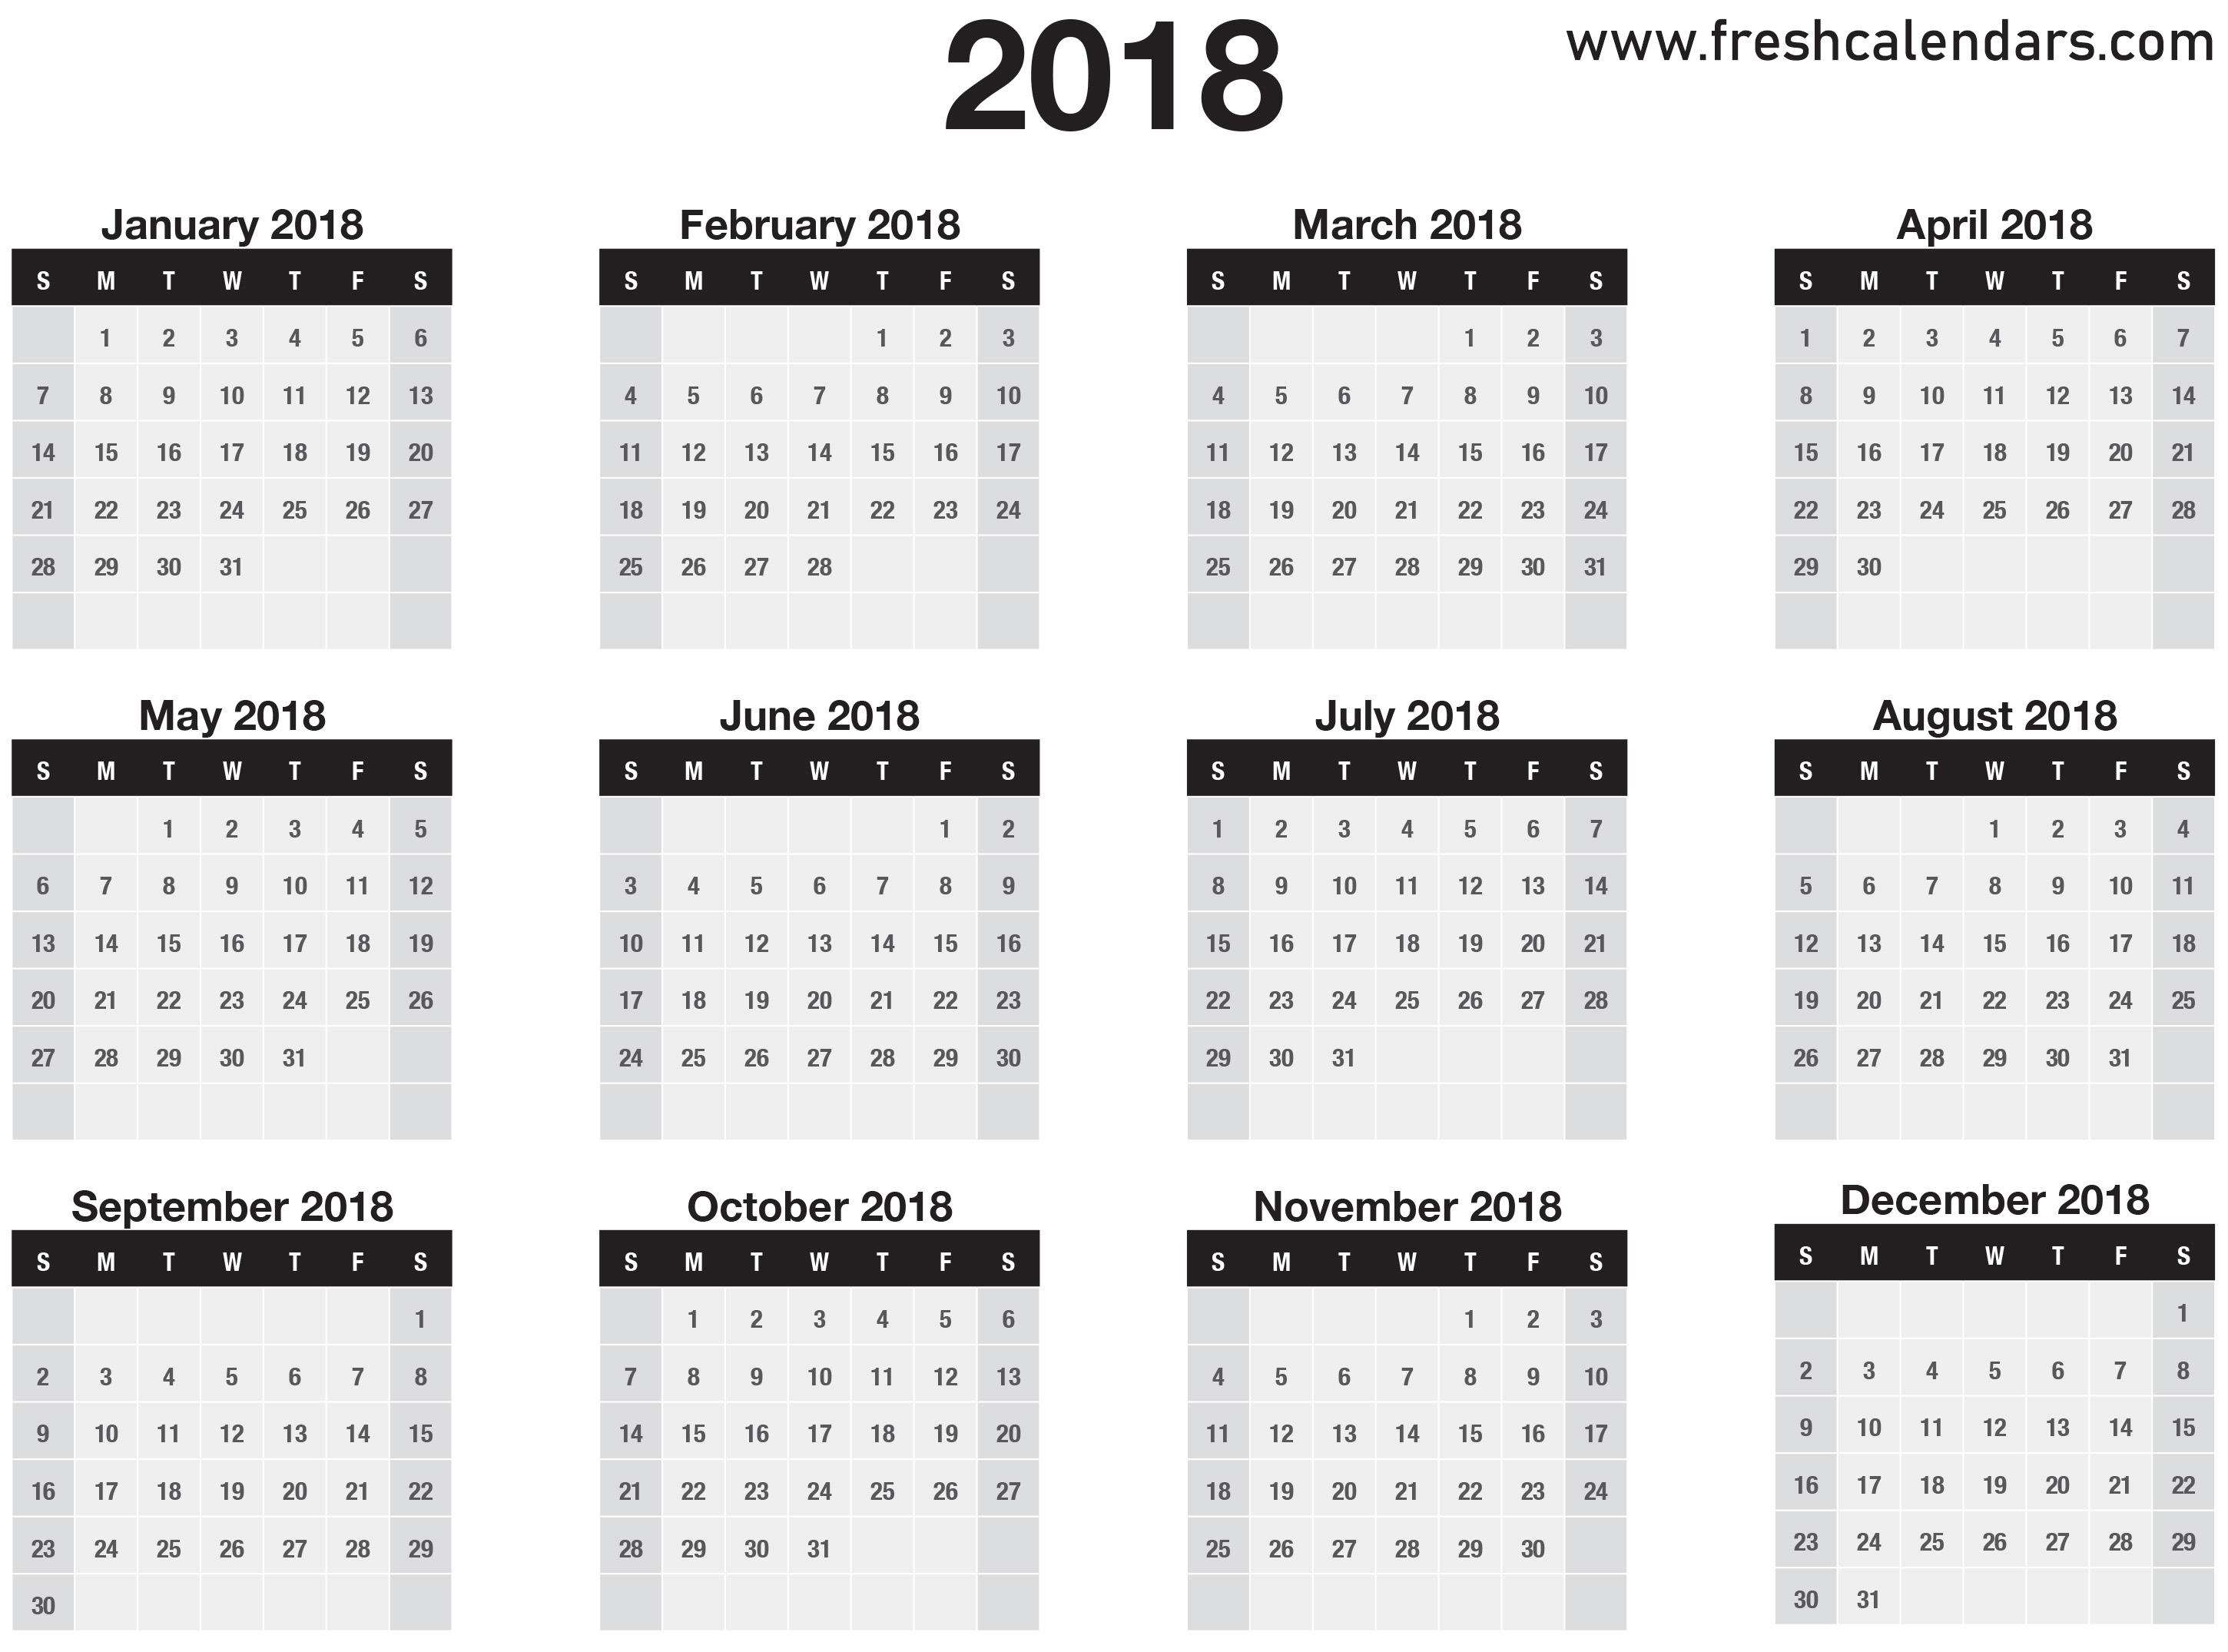 2018 Calendar intended for 12 Month Calendar One Page